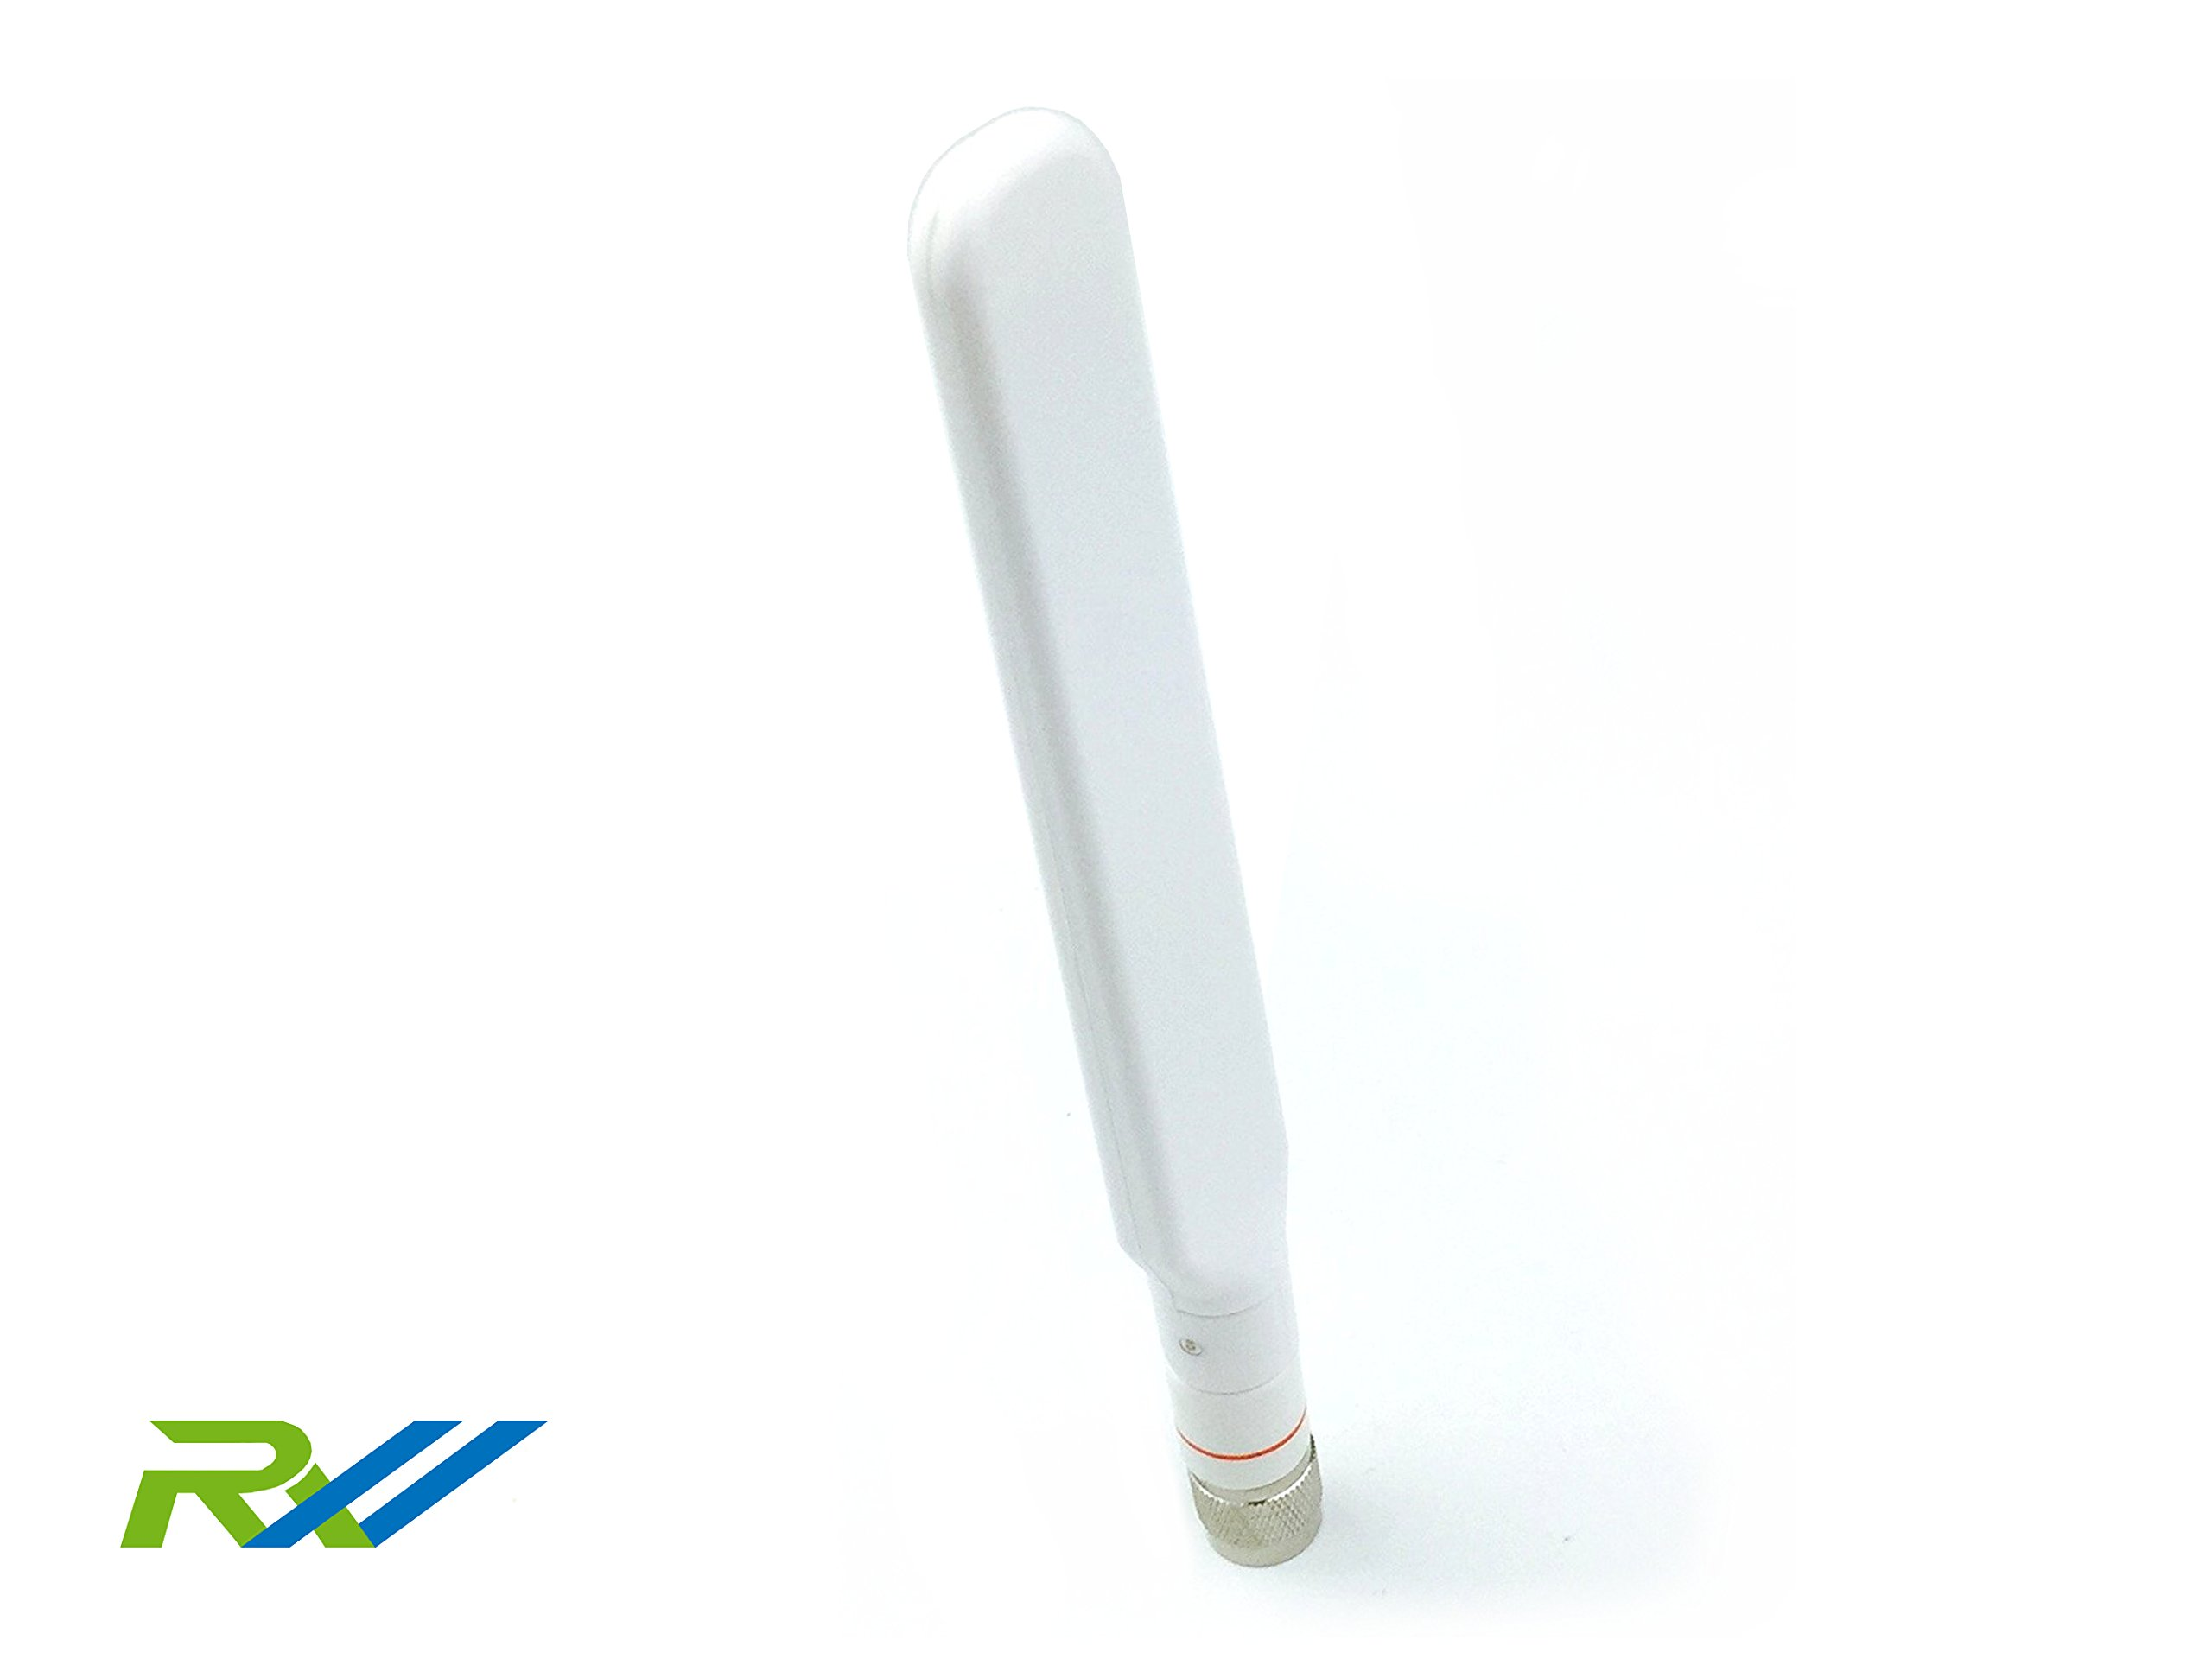 Cisco Compatible 2.4-GHz / 5-GHz dual-band (RP-TNC) AIRONET Antenna AIR-ANT2524DW-R= (WHITE) by RoutersWholesale (Image #4)